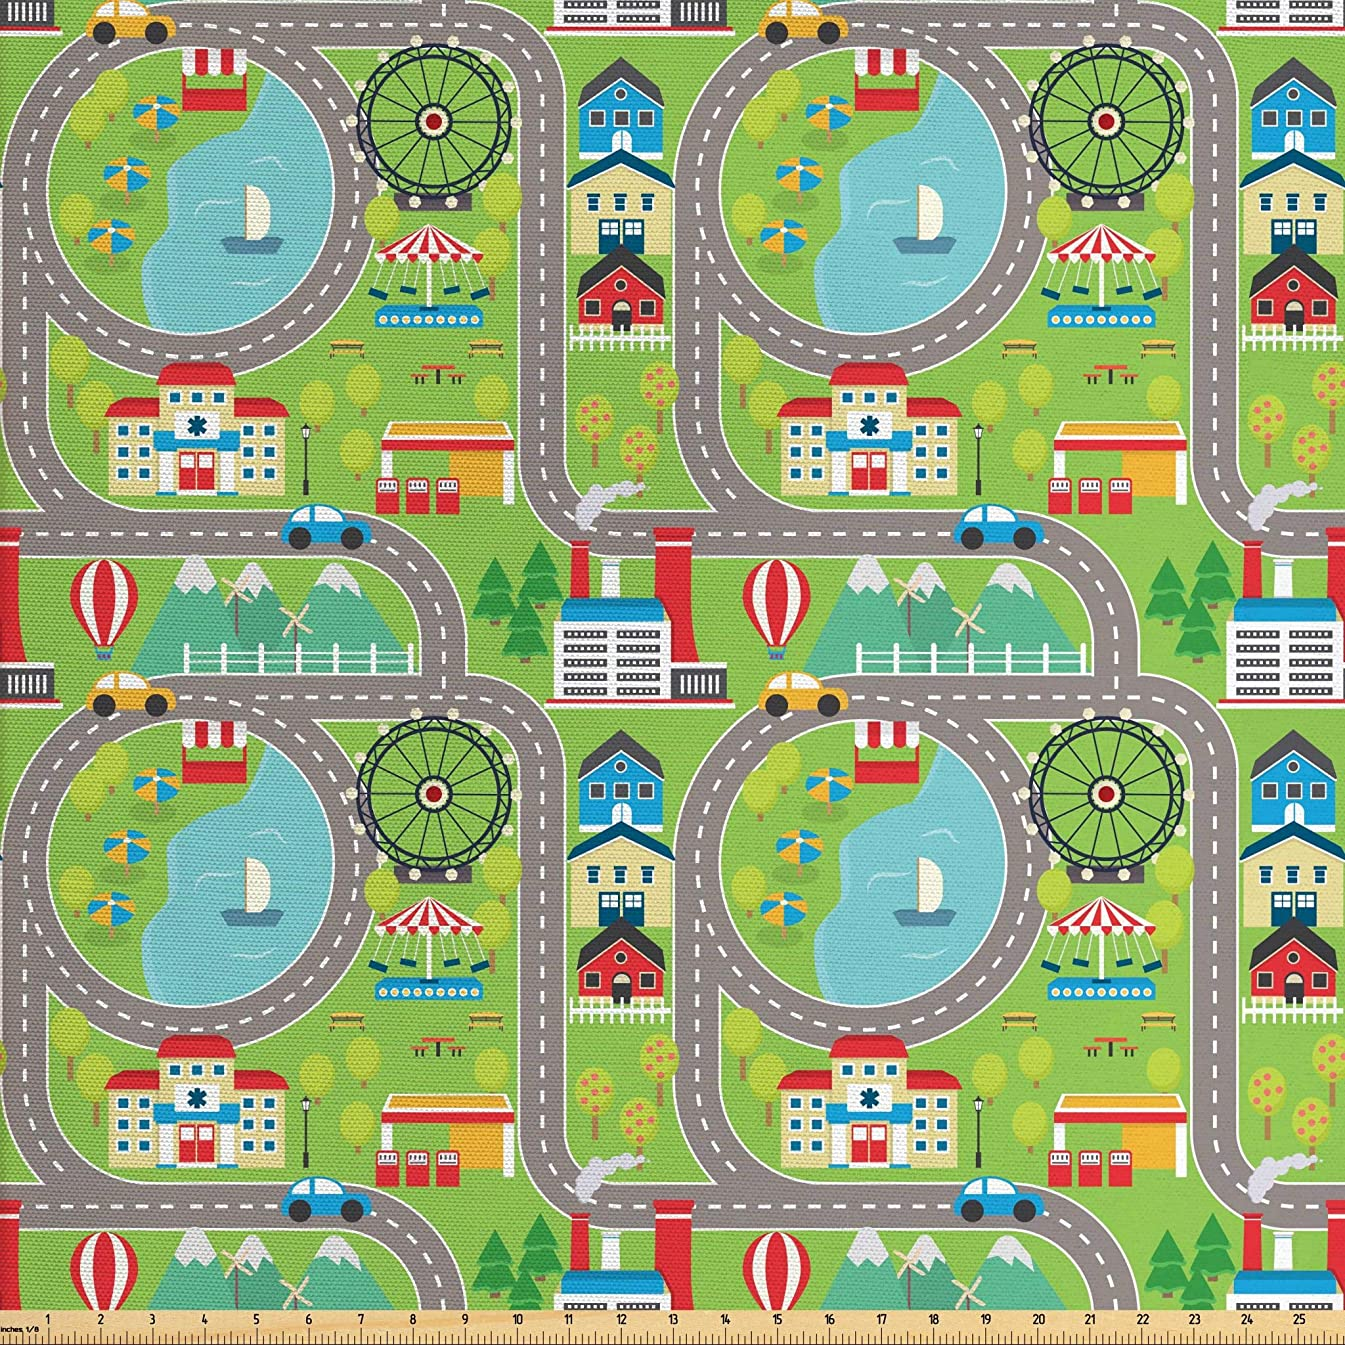 Ambesonne Kids Roadway Activity Fabric by The Yard, Cartoon Design Summer City Amusement Park and Lake Roadway Activity, Decorative Fabric for Upholstery and Home Accents, 1 Yard, Multicolor